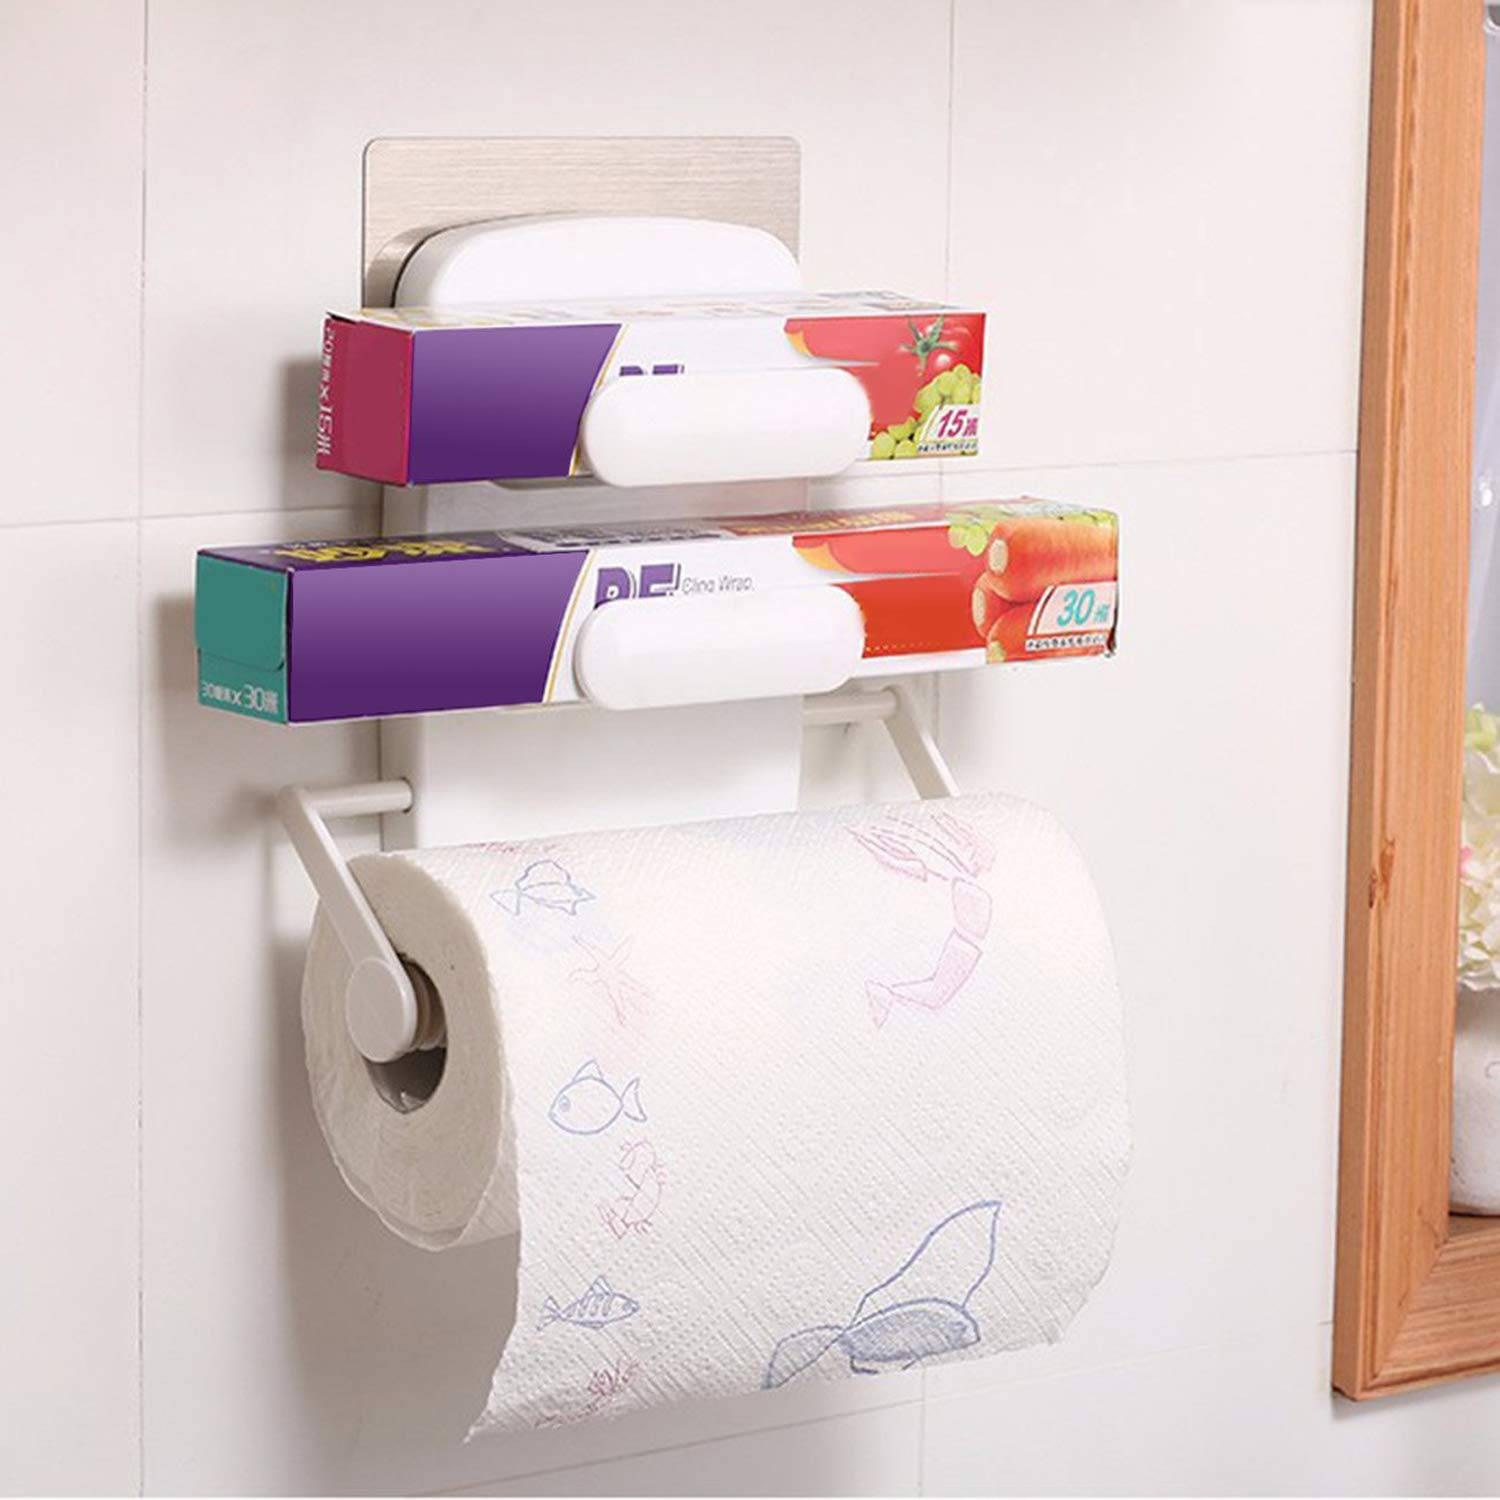 AND005833. Paper Towel Holder